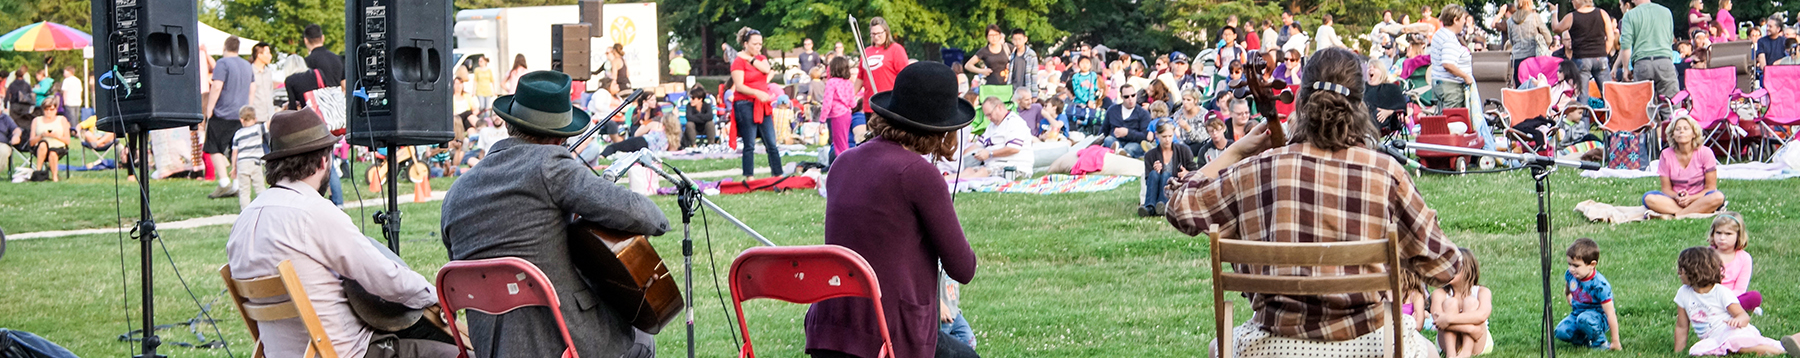 Concert in Waterloo Park